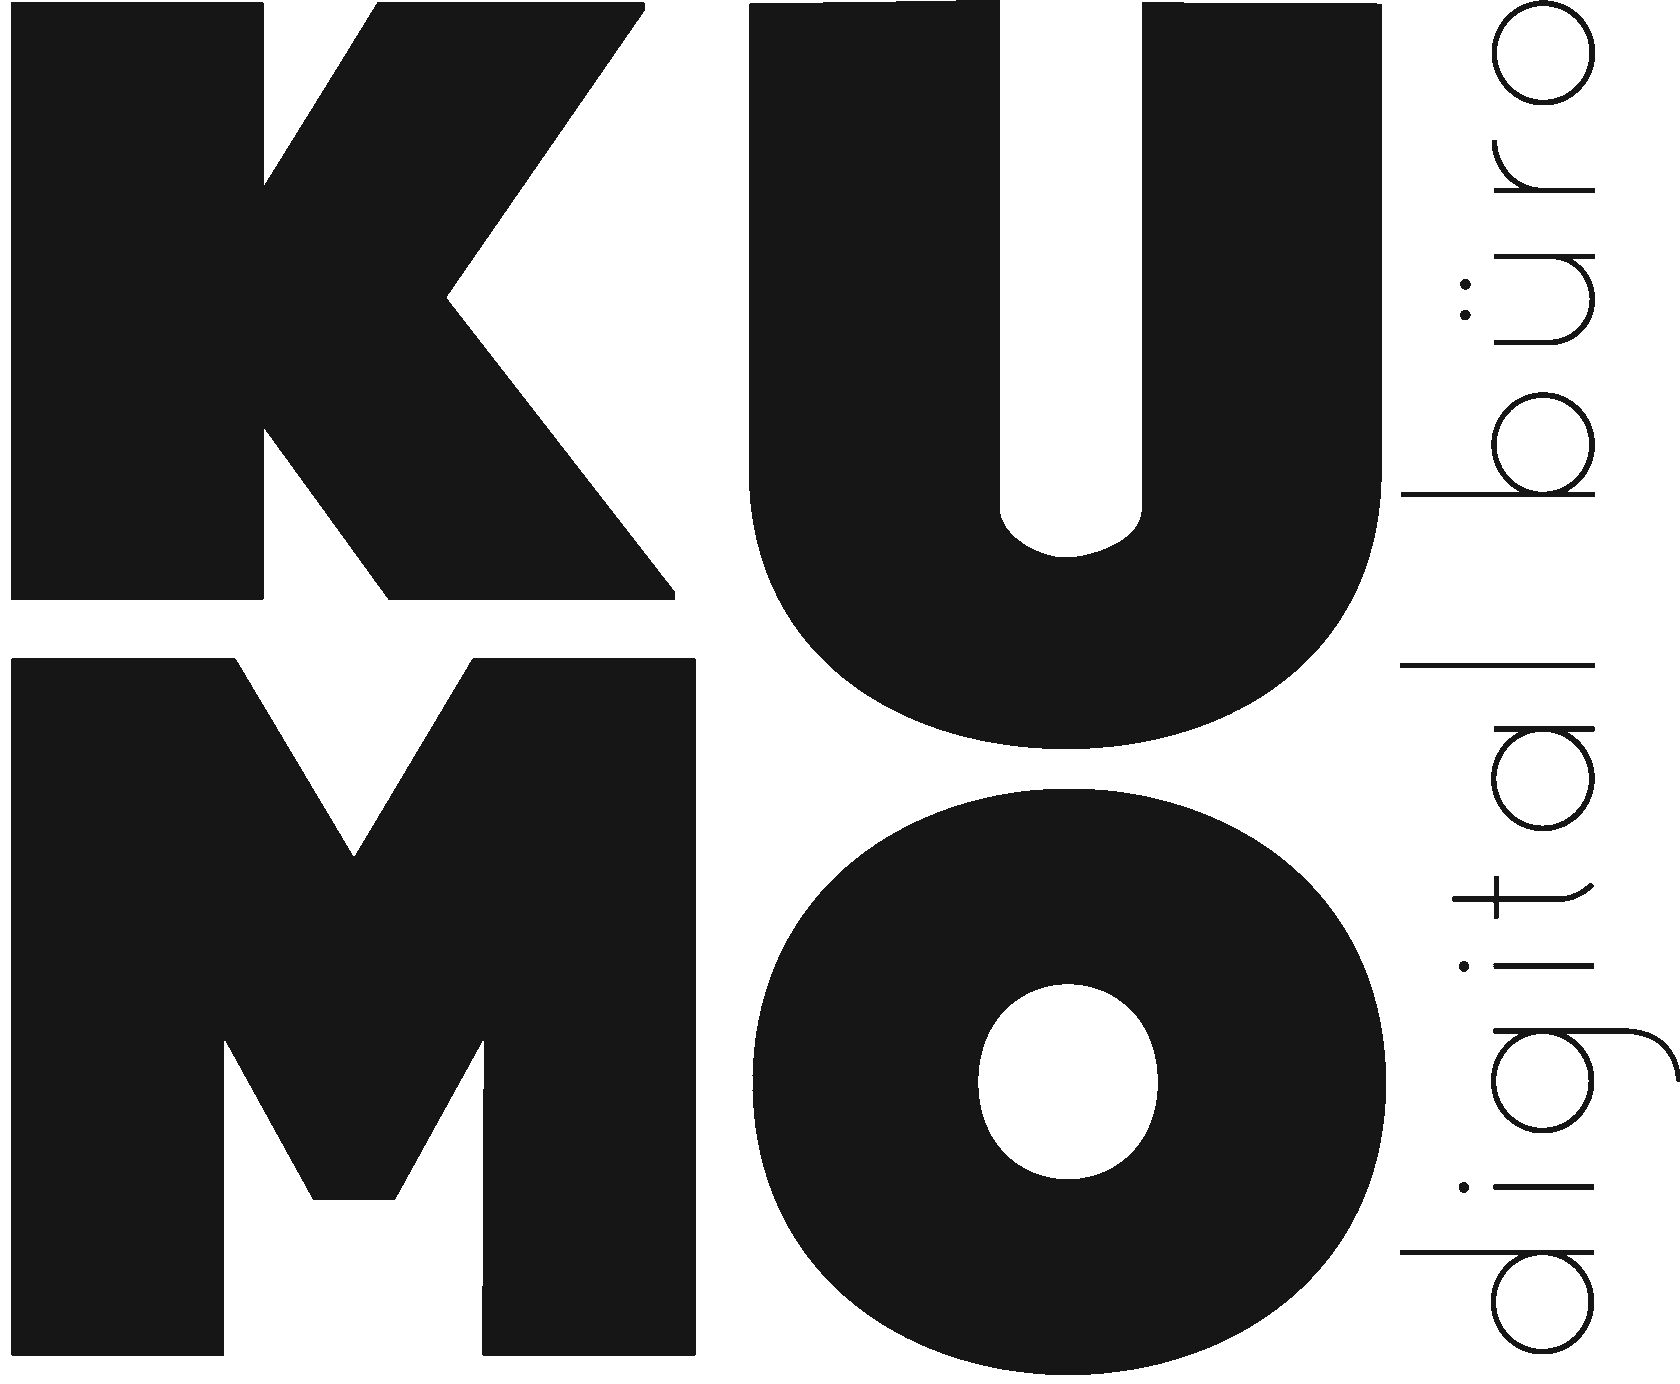 KUMO Digital Buro